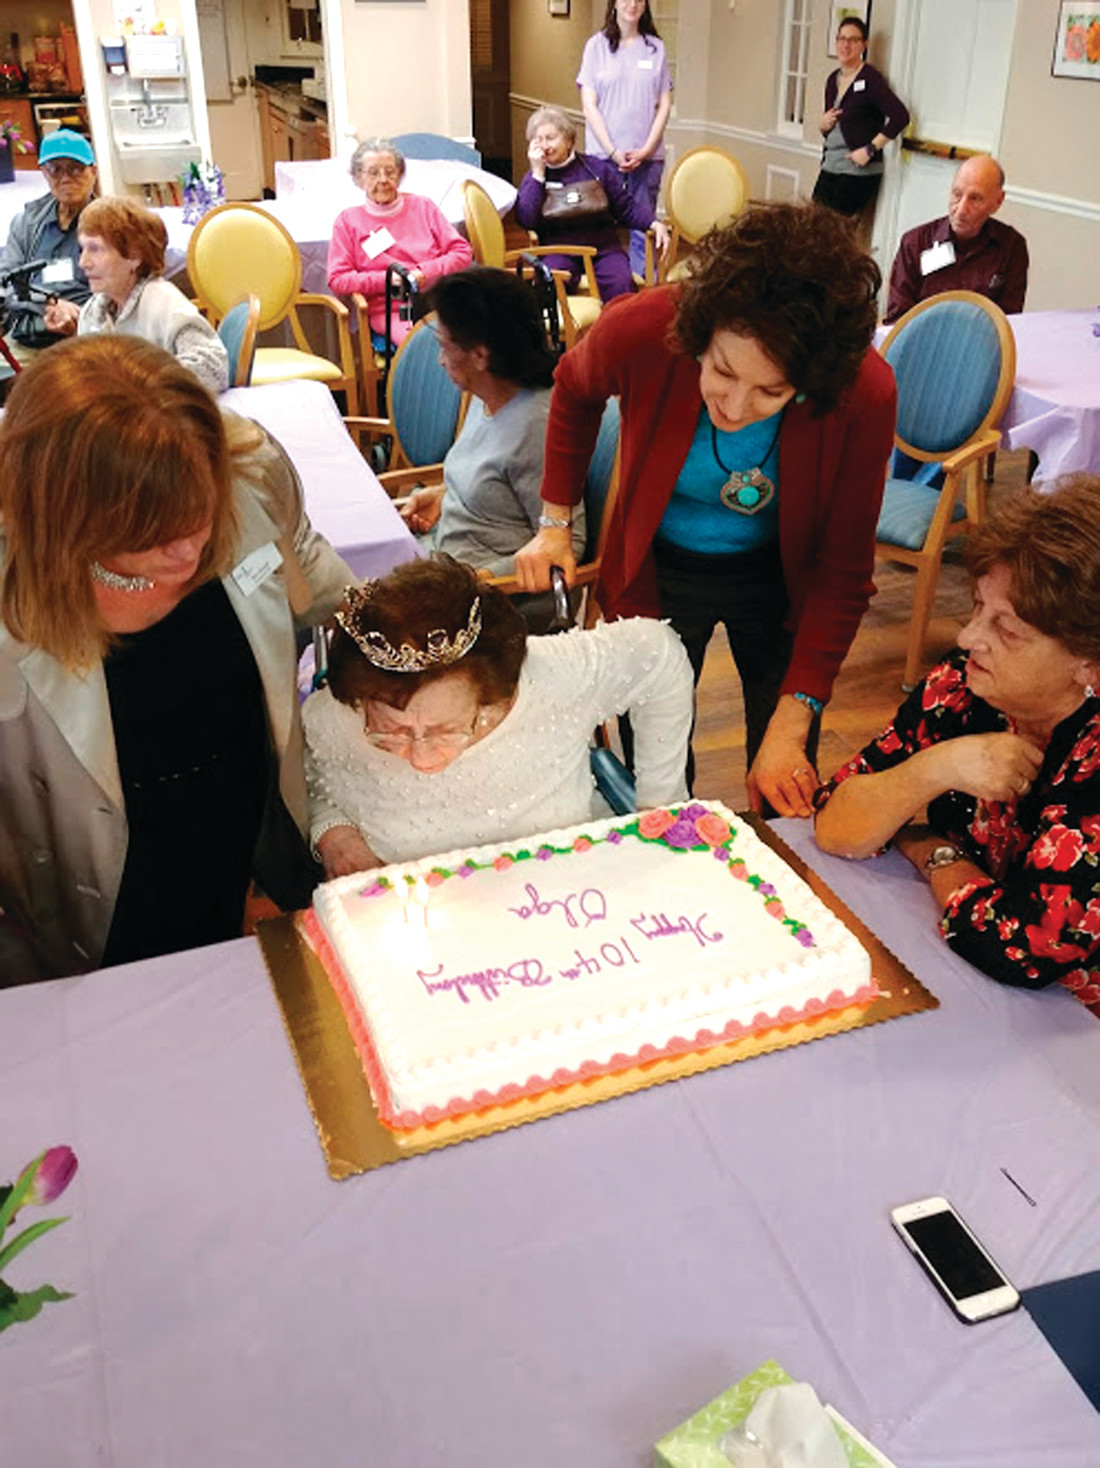 MAKING A WISH: Susi blows out the candles on her cake, which commemorated 104 years of living. She is assisted by her daughter, Anita, and Ellen Grizzetti, president and CEO of the Hope Alzheimer's Center in Cranston.